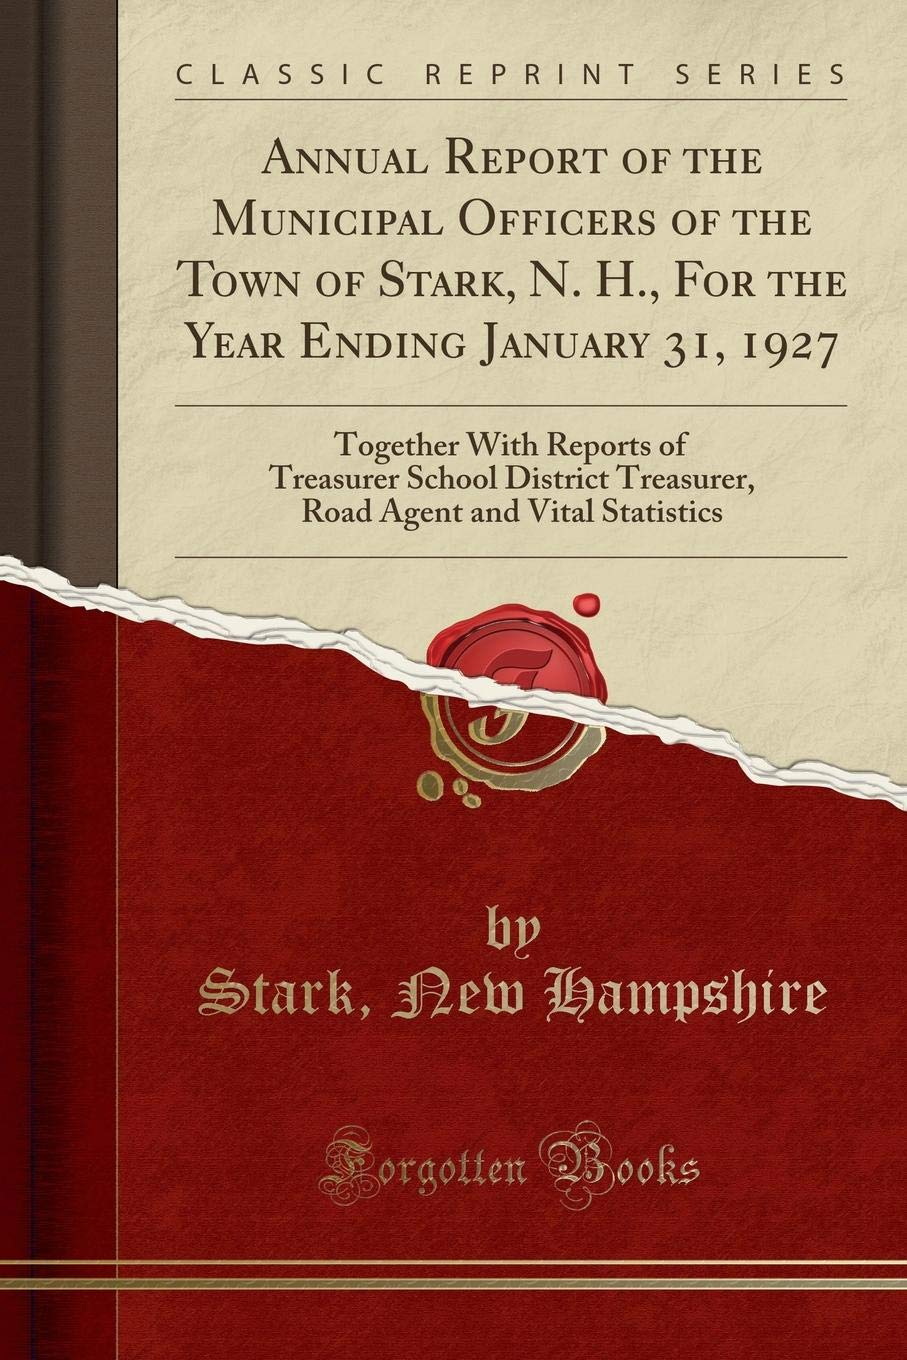 Download Annual Report of the Municipal Officers of the Town of Stark, N. H., For the Year Ending January 31, 1927: Together With Reports of Treasurer School ... Agent and Vital Statistics (Classic Reprint) ebook